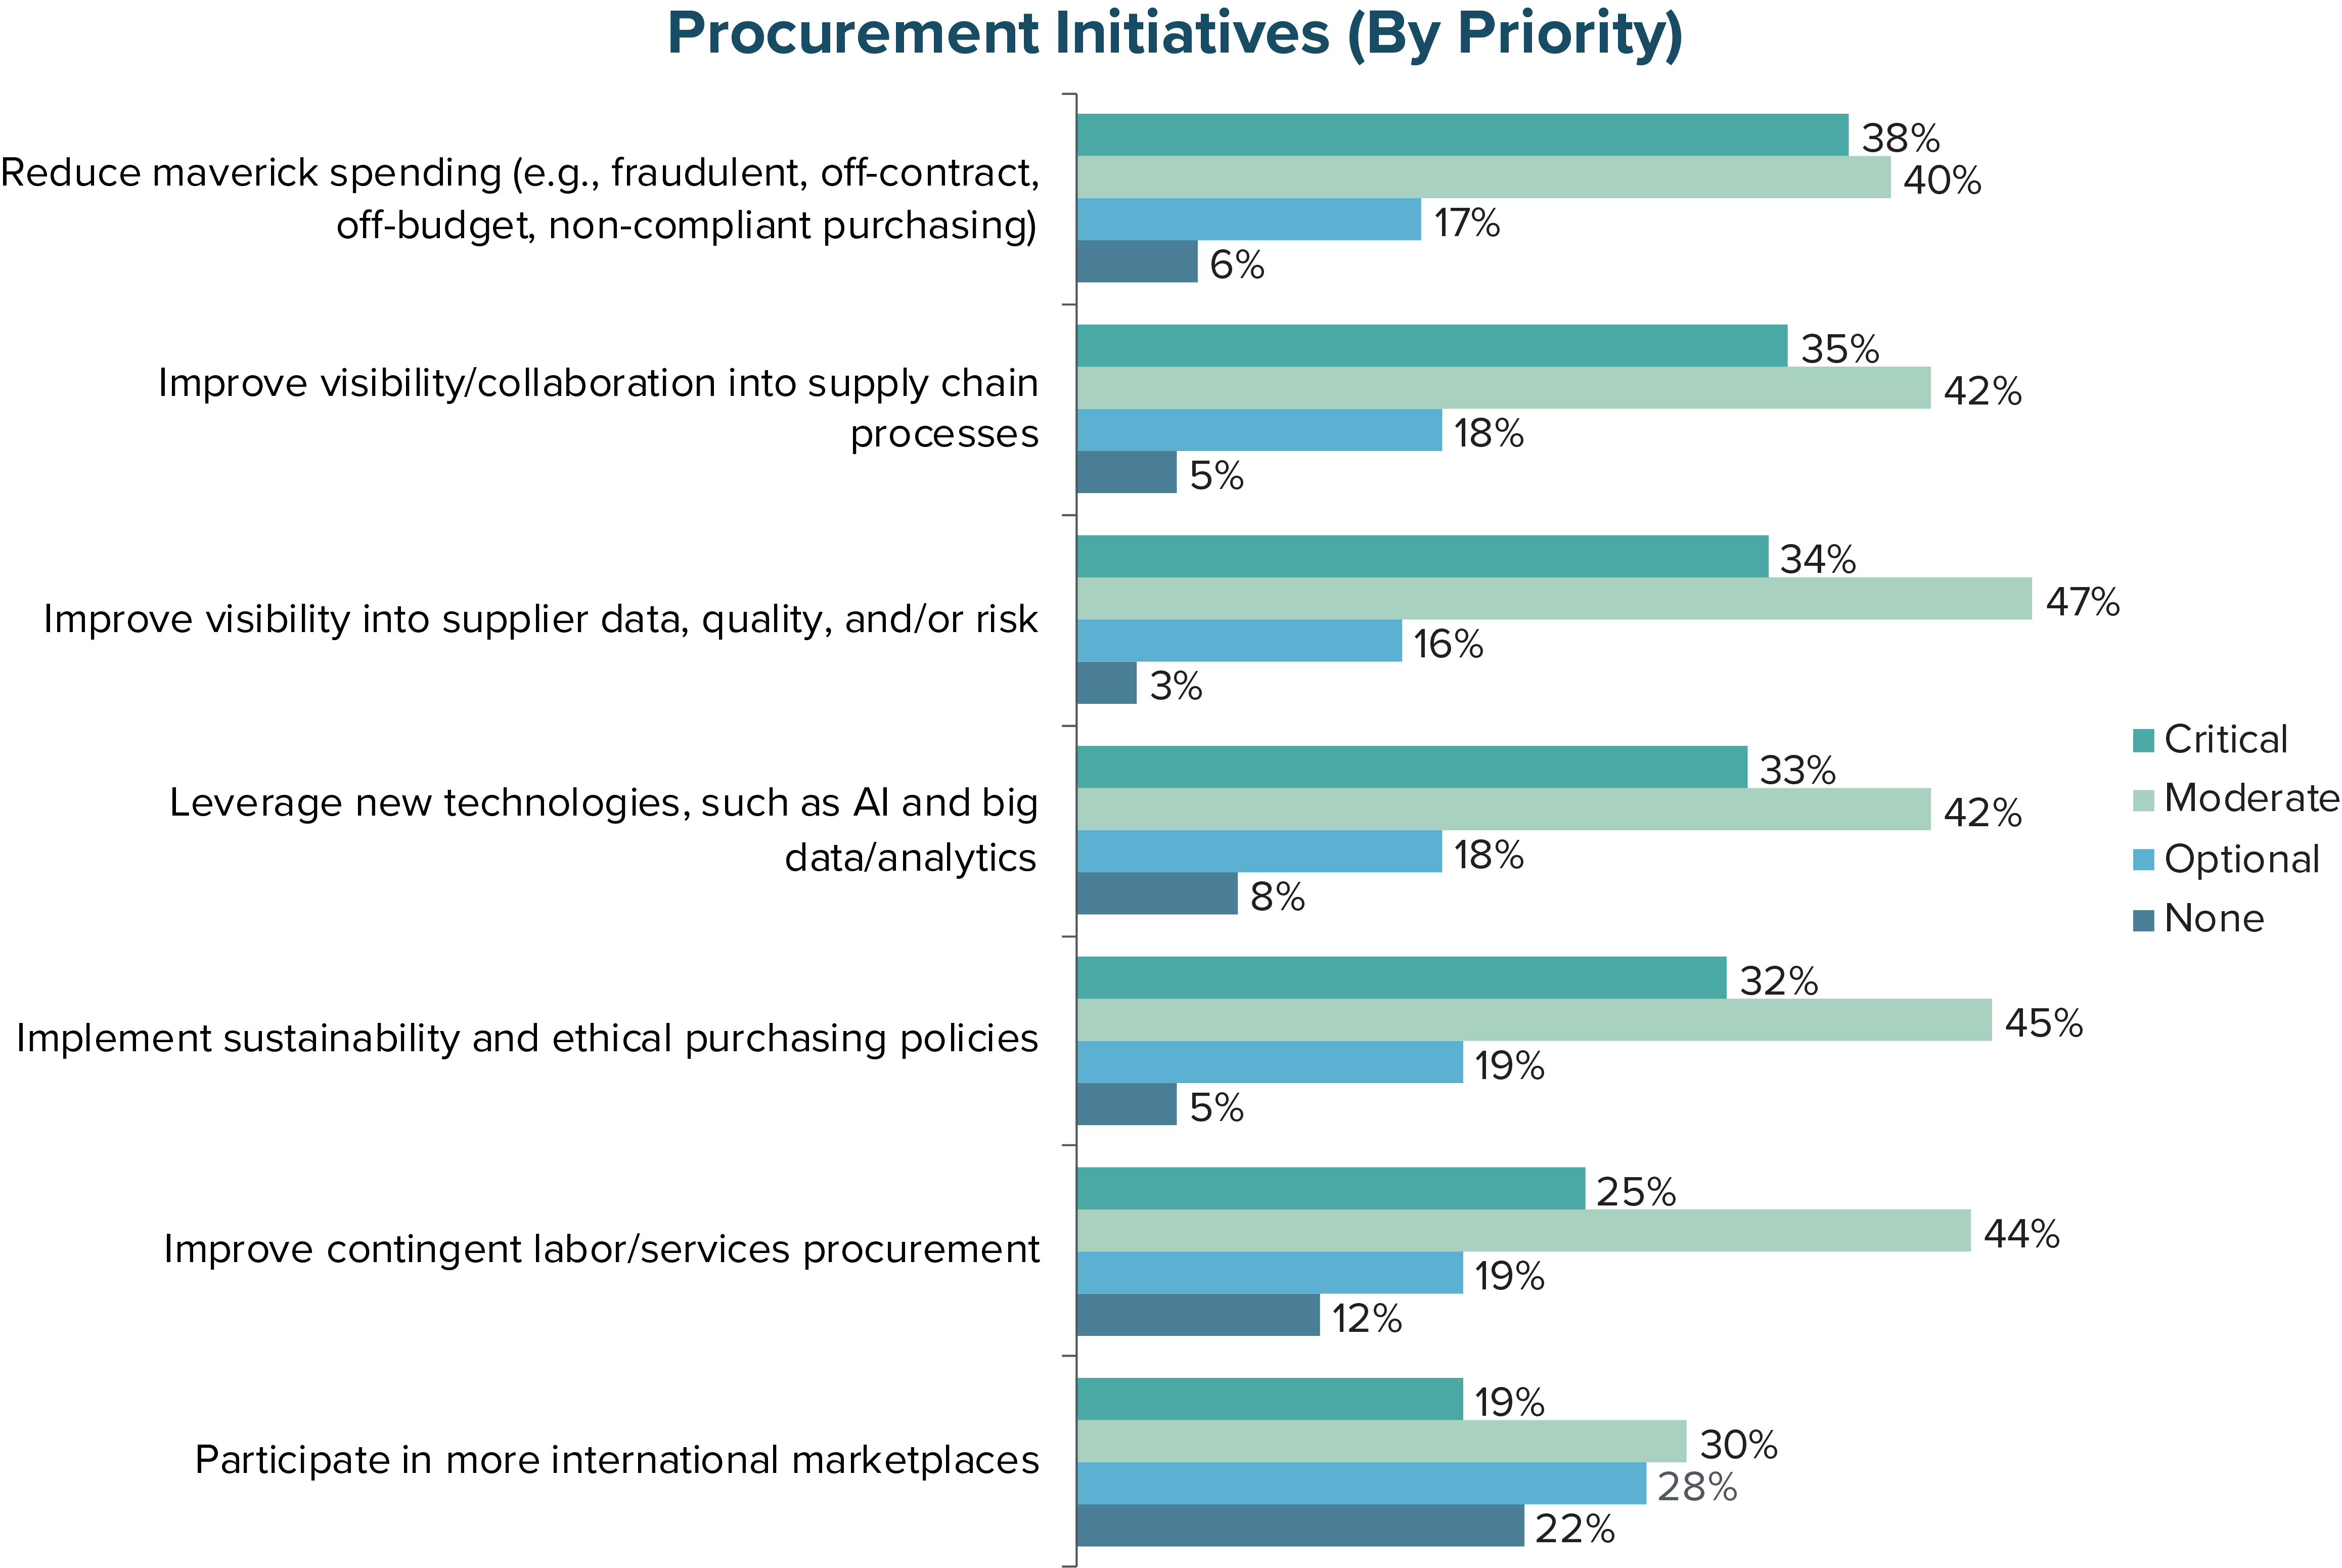 Procurement Initiatives (by Priority)